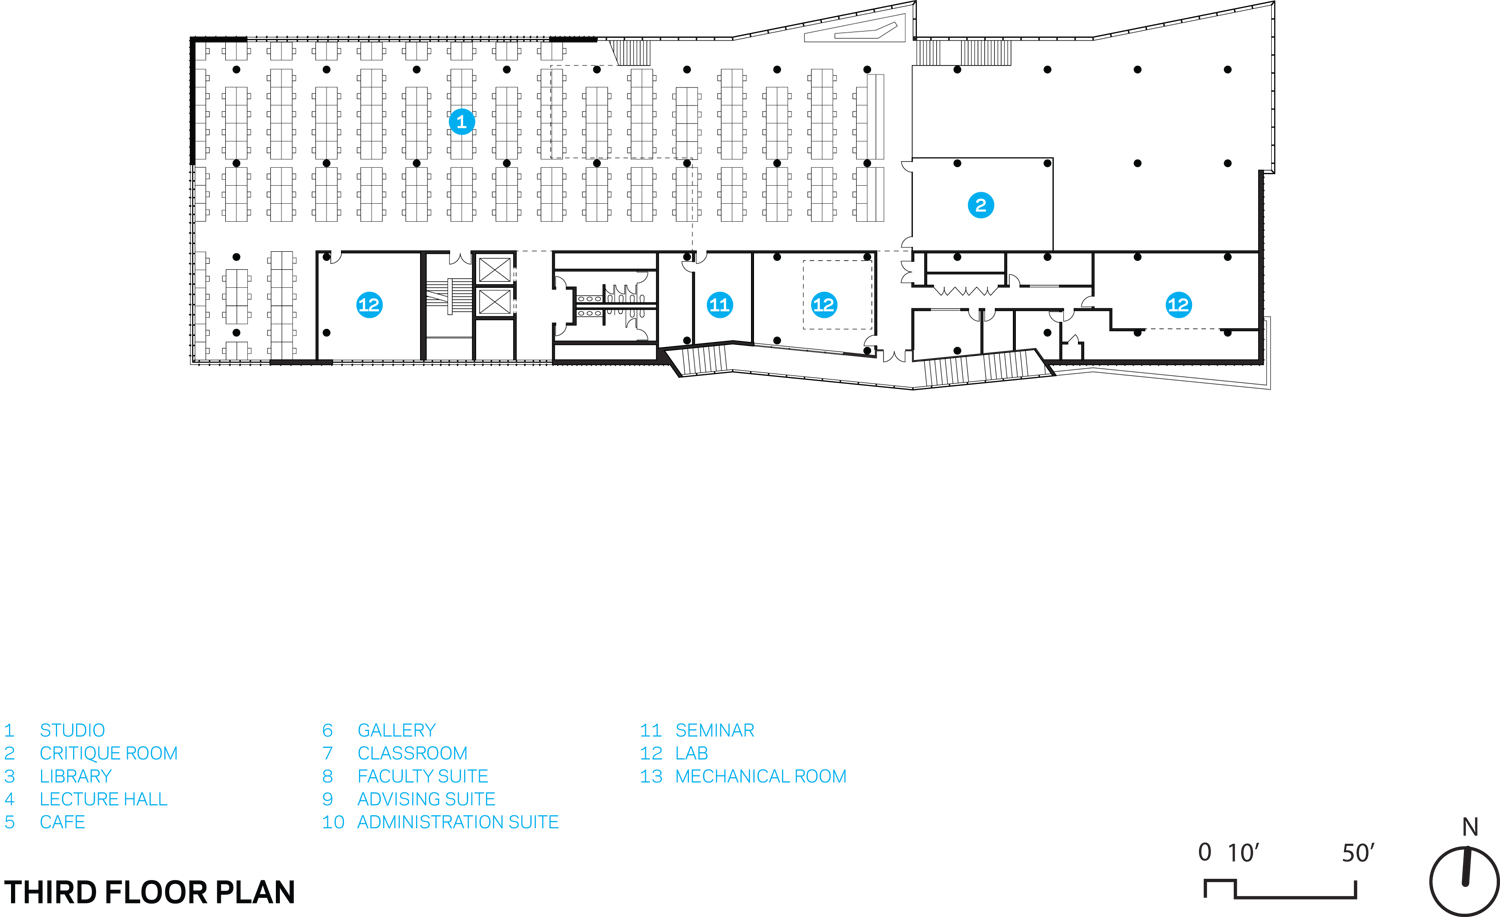 THIRD FLOOR PLAN Courtesy of WEISS/MANFREDI}